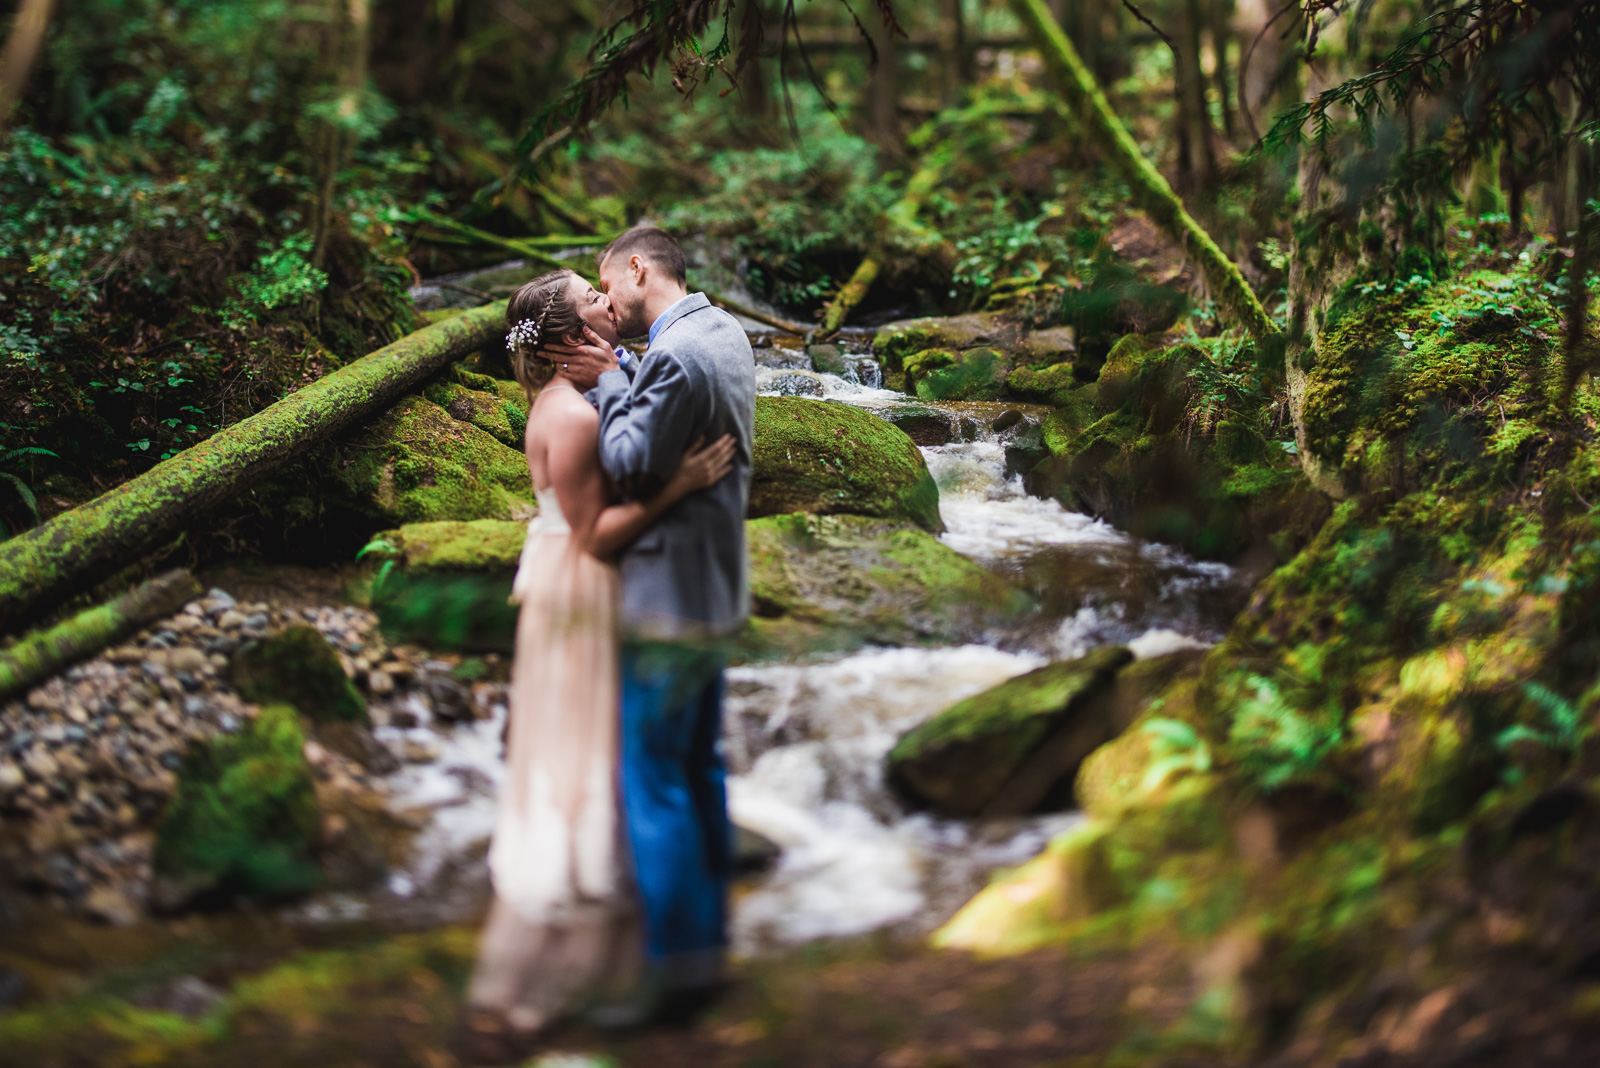 vancouver-island-wedding-photographers-cliff-gilker-park-smugglers-cove-elopement-13.jpg